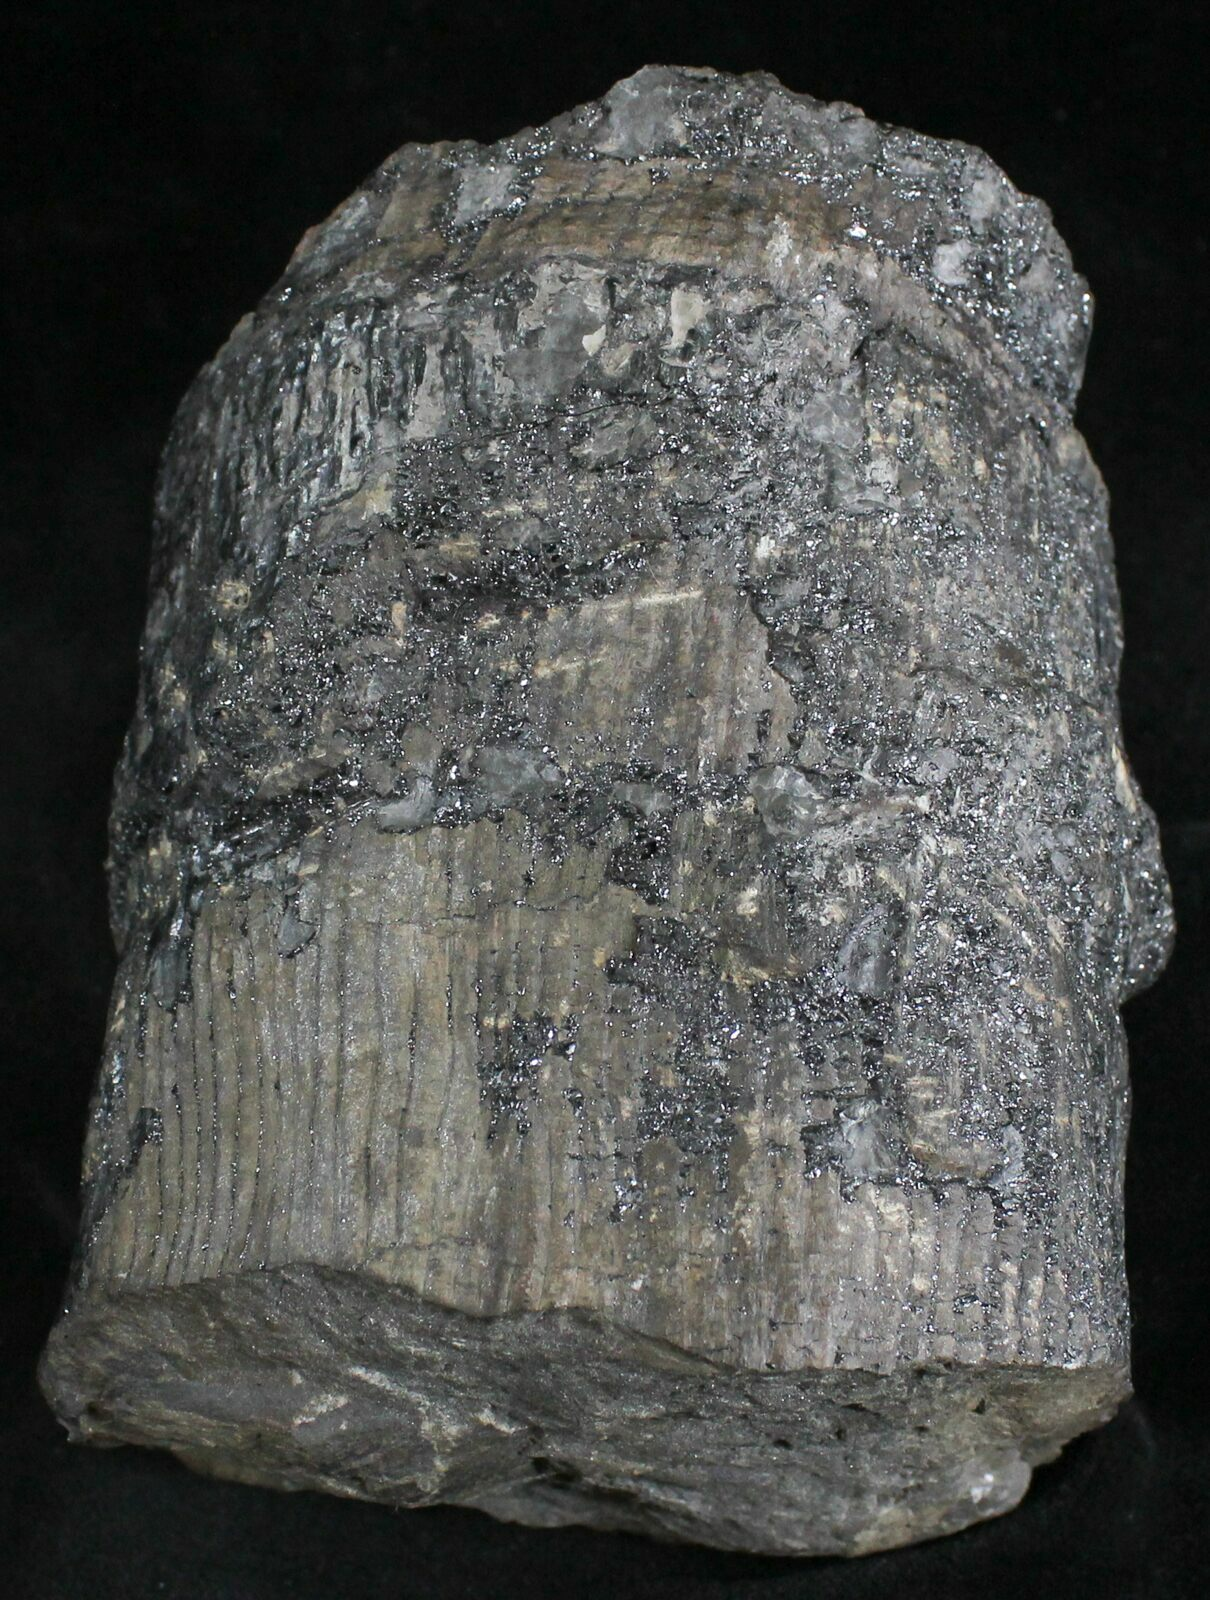 4 4 Fossil Calamites Trunk Section